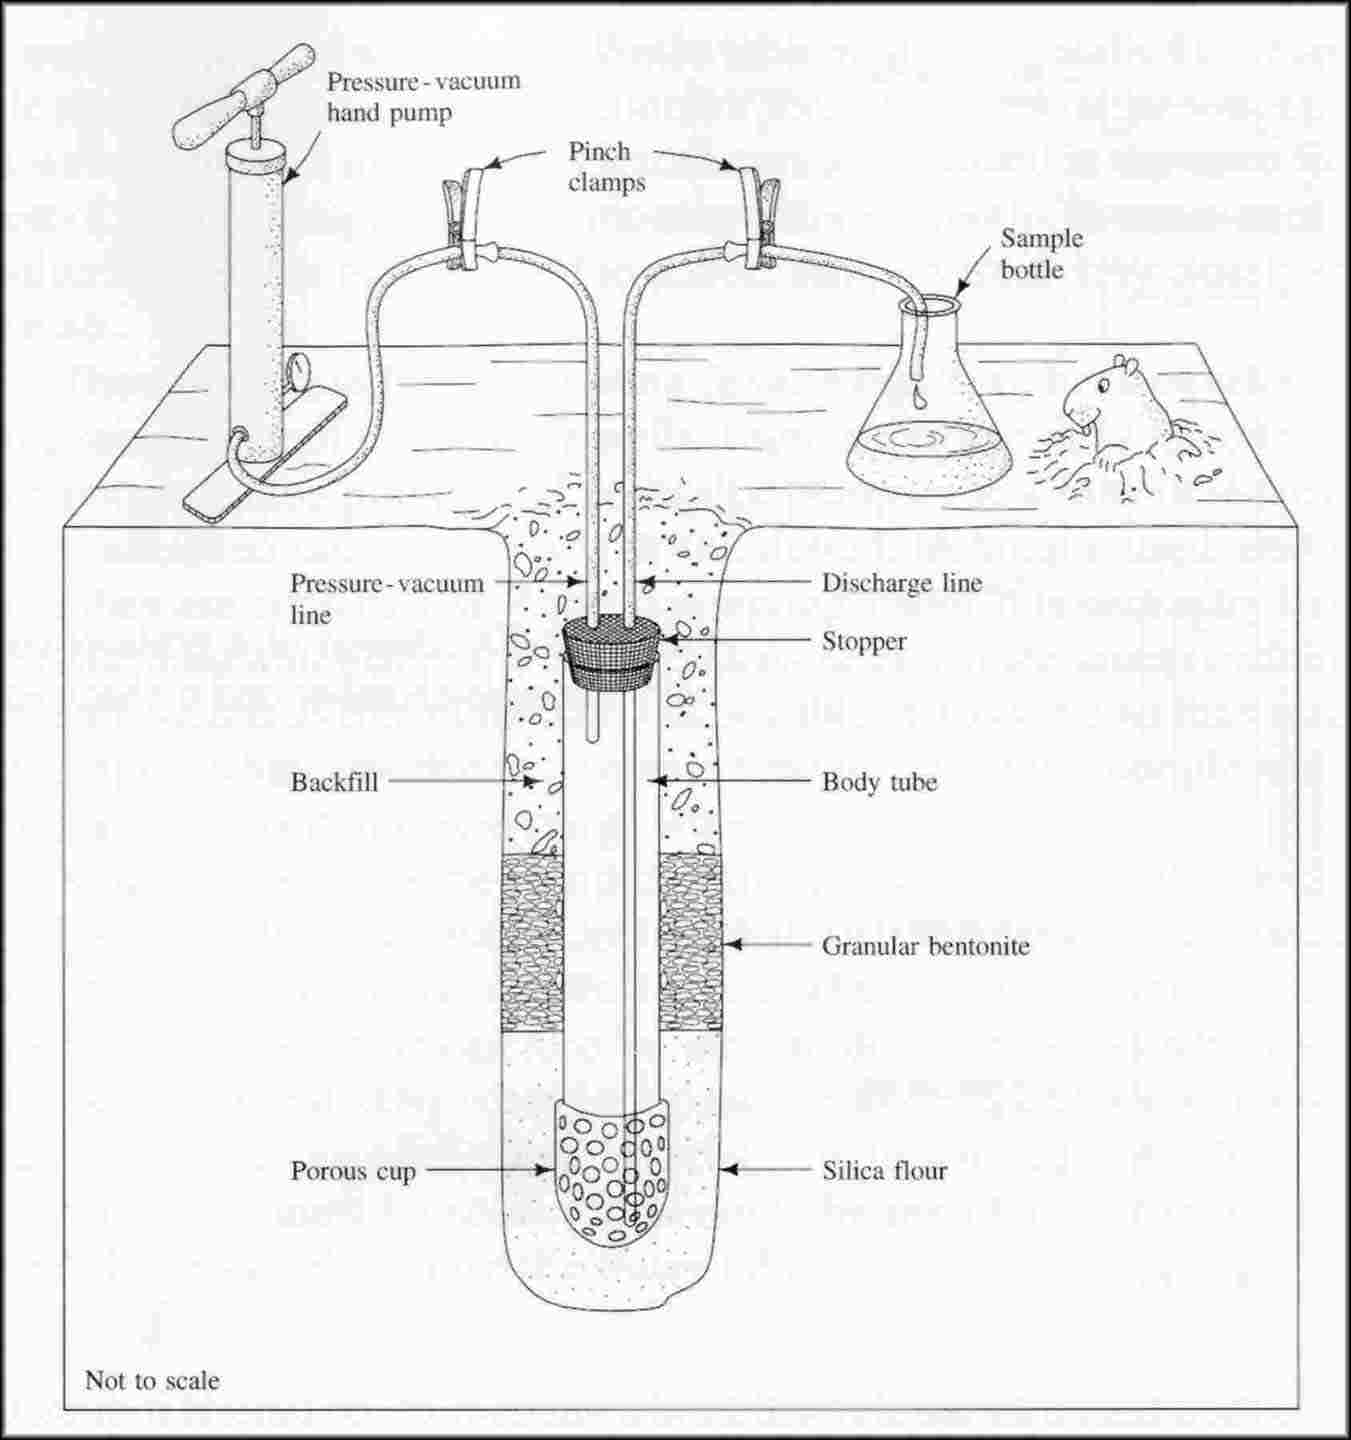 Biological Vacuum Sewage Treatment Plant On Ships likewise 2006 Dodge Ram Cummins Wiring Diagram as well Dyson Parts moreover 34860045 furthermore 50160 Chilled Water Central Air Conditioning Systems. on valve schematic